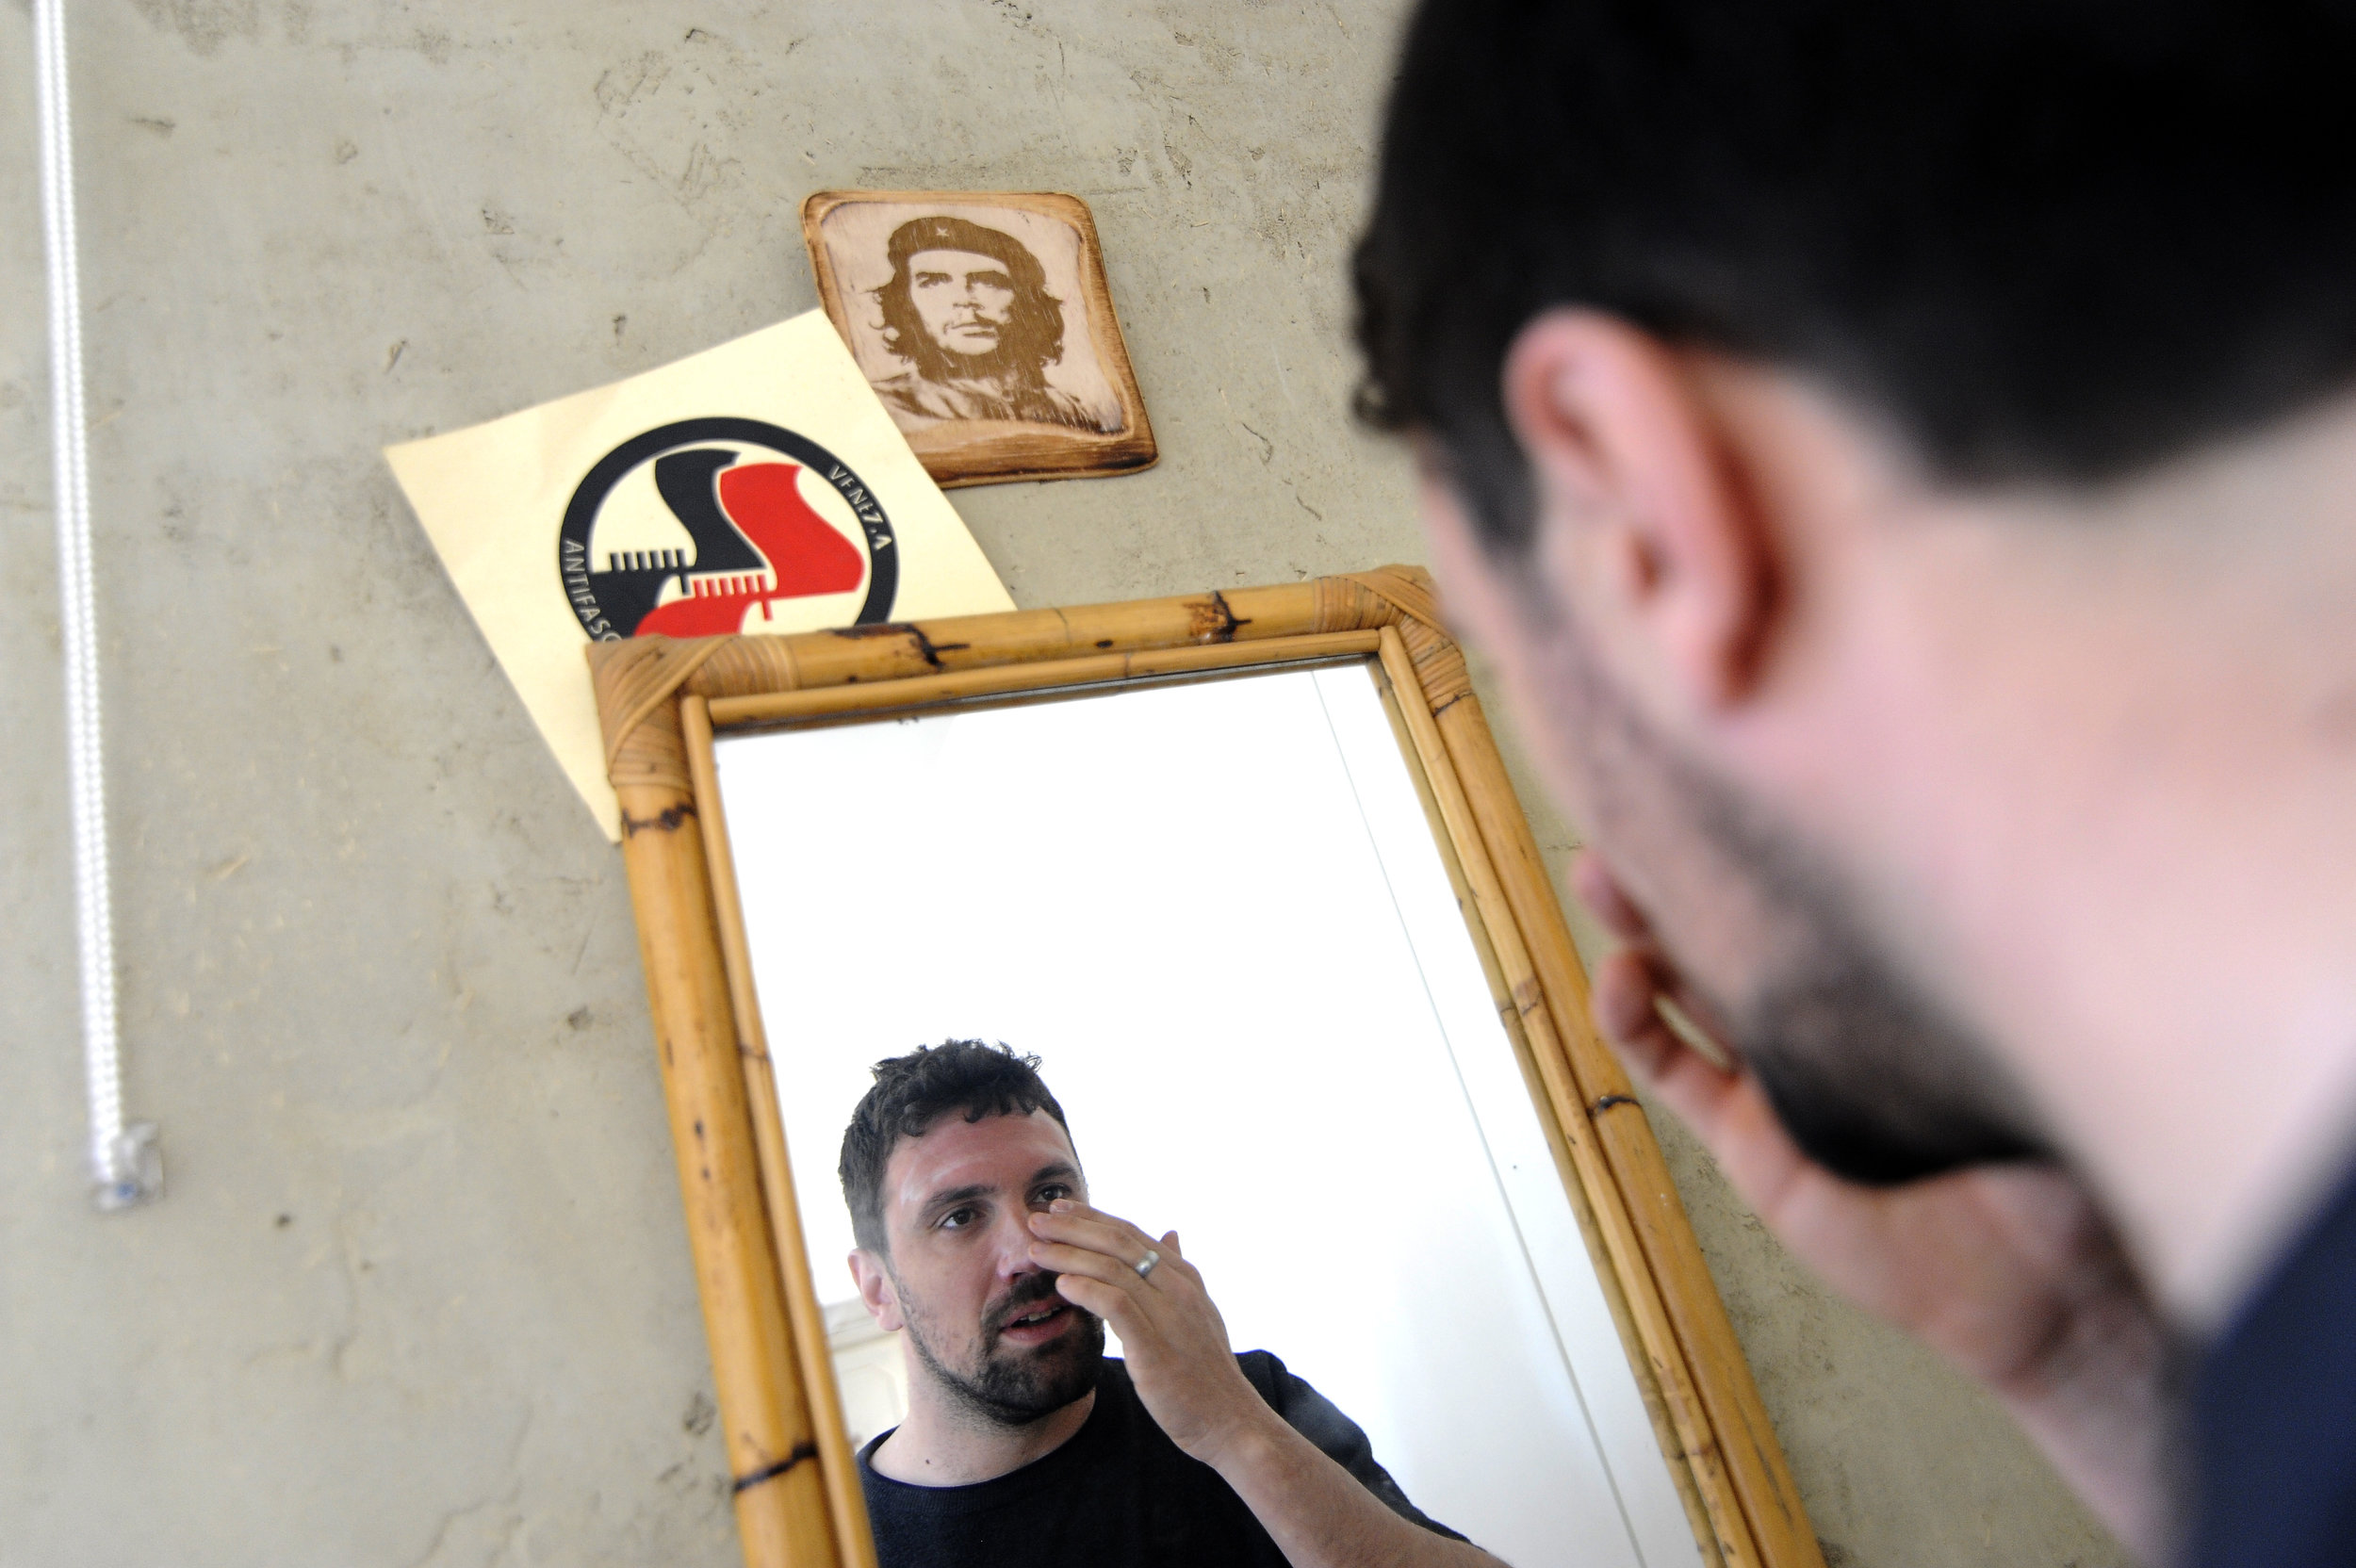 """Alessandro Dus, 34, gets ready to go to work in his illegally occupied apartment in the Casette neighbourhood in Venice, Italy, April 3, 2019. """"The choice to live in an illegally occupied apartment is an economic but also political choice. We want to denounce the thousands of closed abandoned apartments in Venice and when we move to an abandoned apartment we renovate it and we make it habitable again."""", Dus said."""